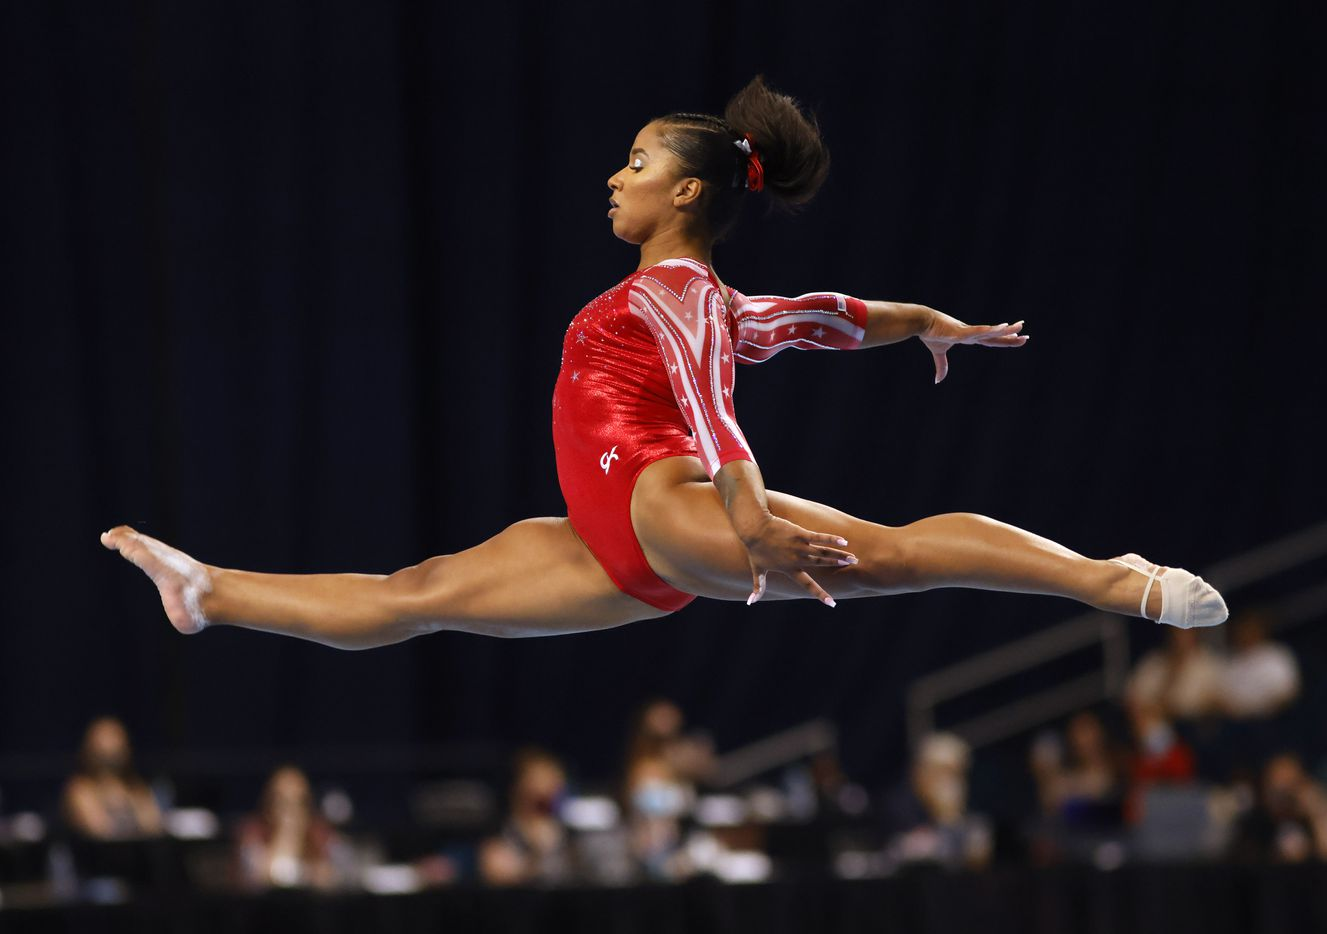 Jordan Chiles during her floor routine during day 2 of the women's 2021 U.S. Olympic Trials at The Dome at America's Center on Saturday, June 27, 2021 in St Louis, Missouri.(Vernon Bryant/The Dallas Morning News)